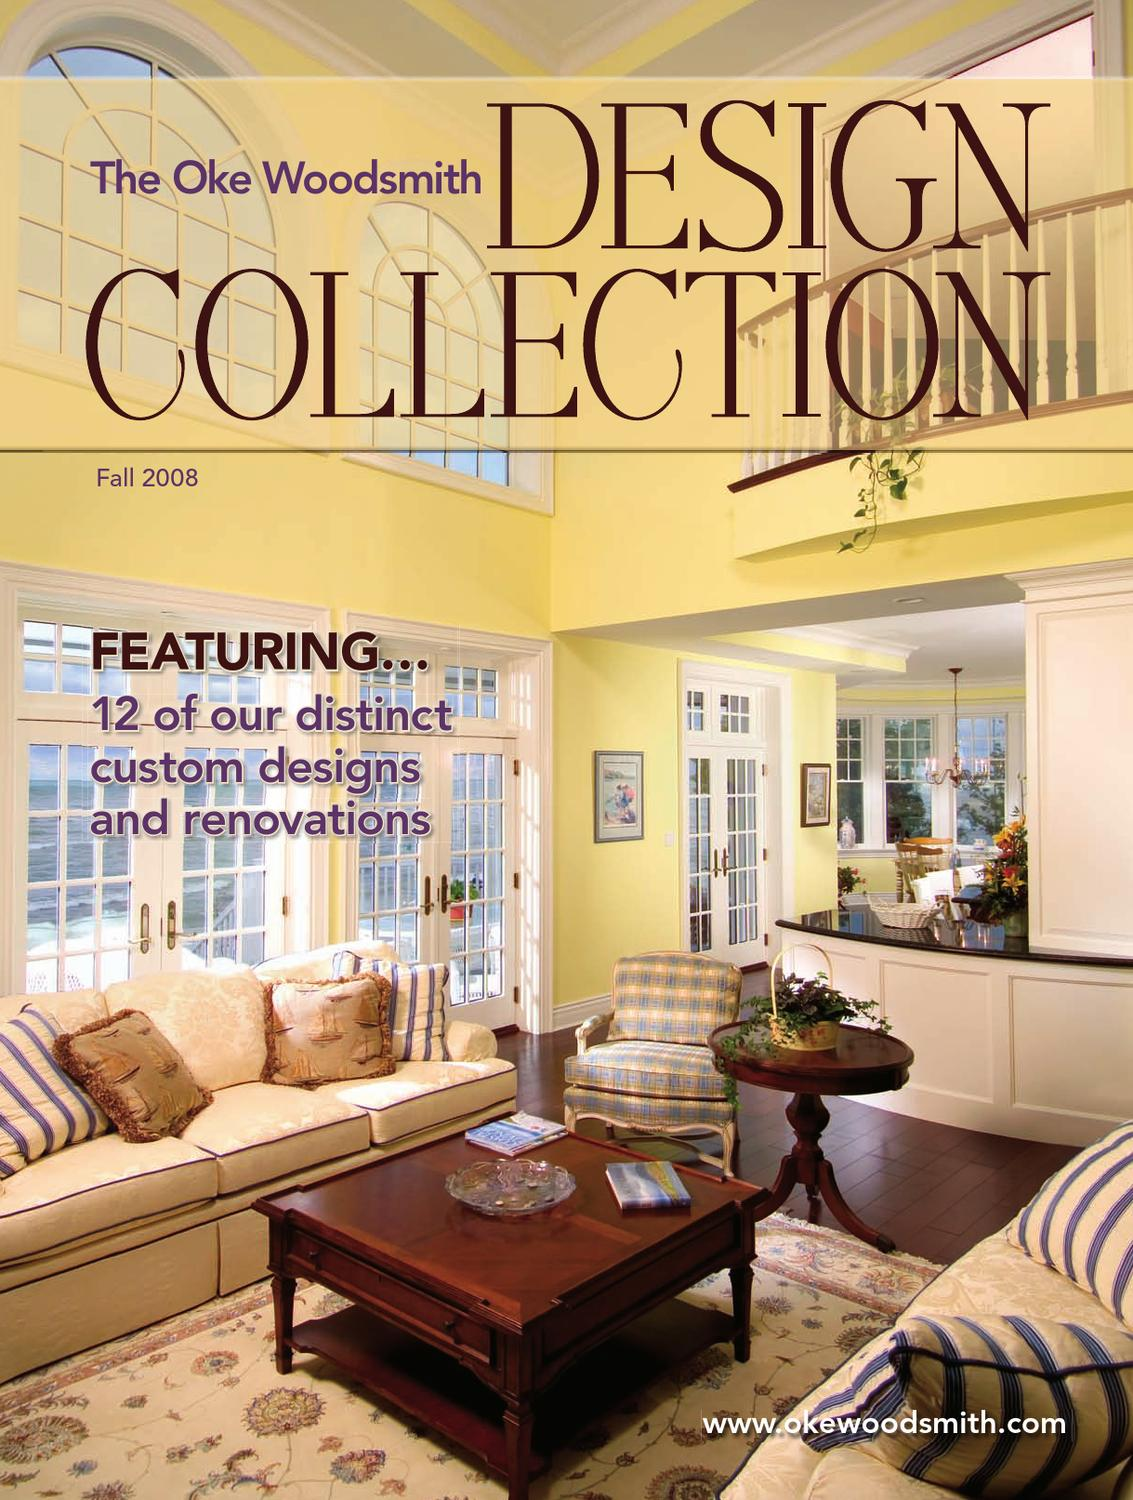 The Oke Woodsmith Collection Of Homes Fall 2008 By Ecoworks Web Architecture Issuu